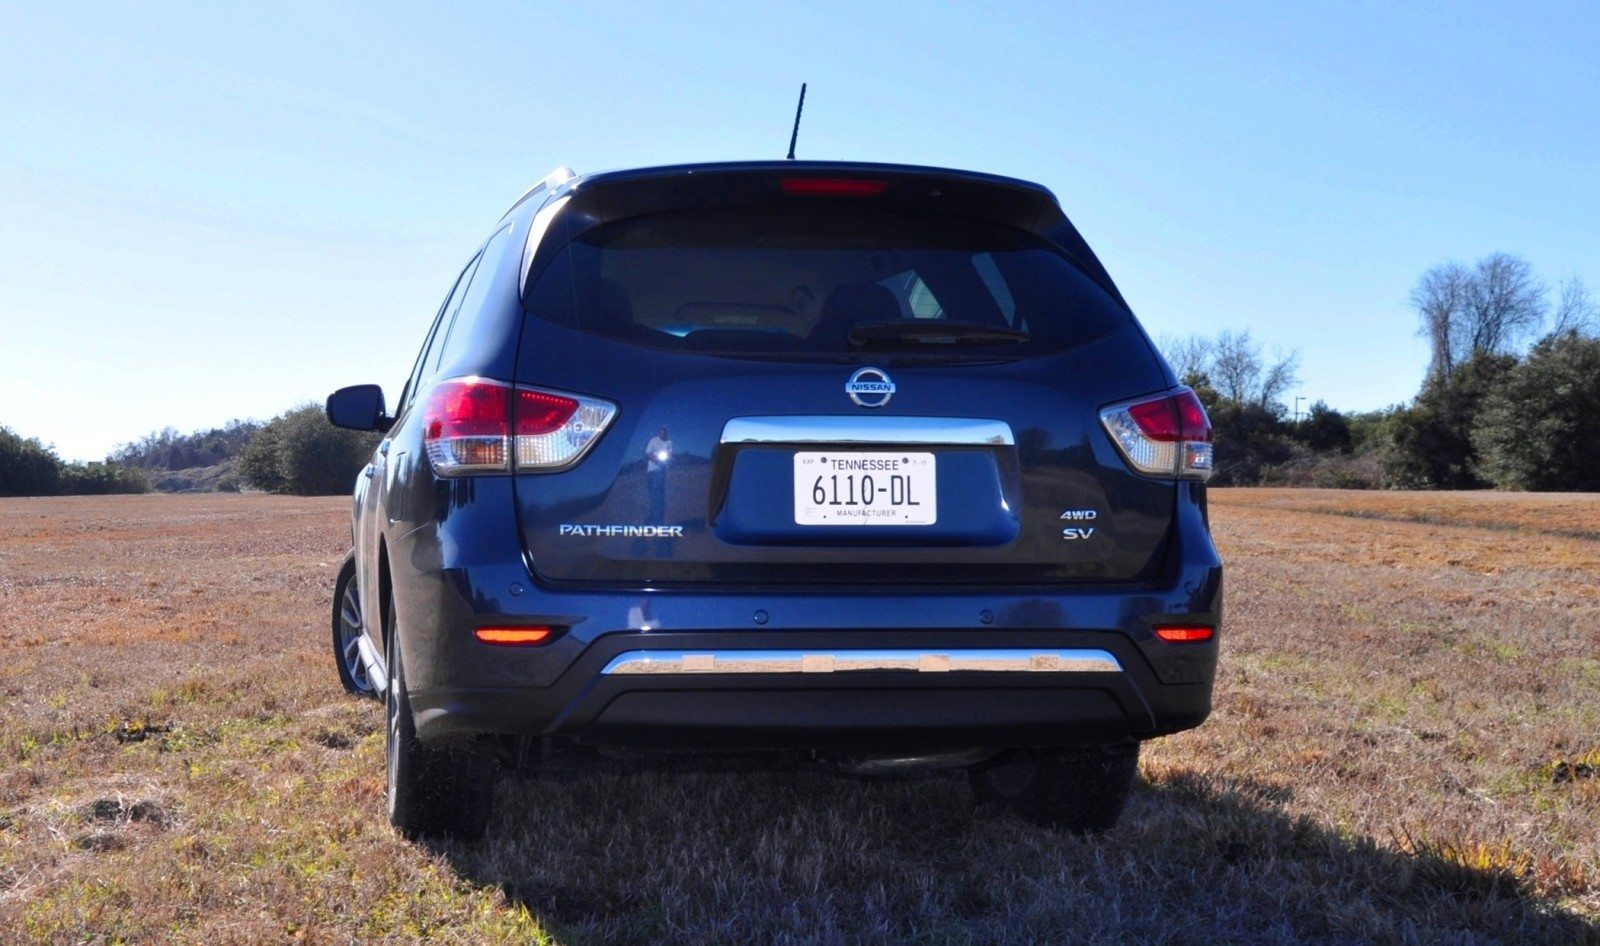 Road Test Review - 2015 Nissan Pathfinder SV 4WD 103